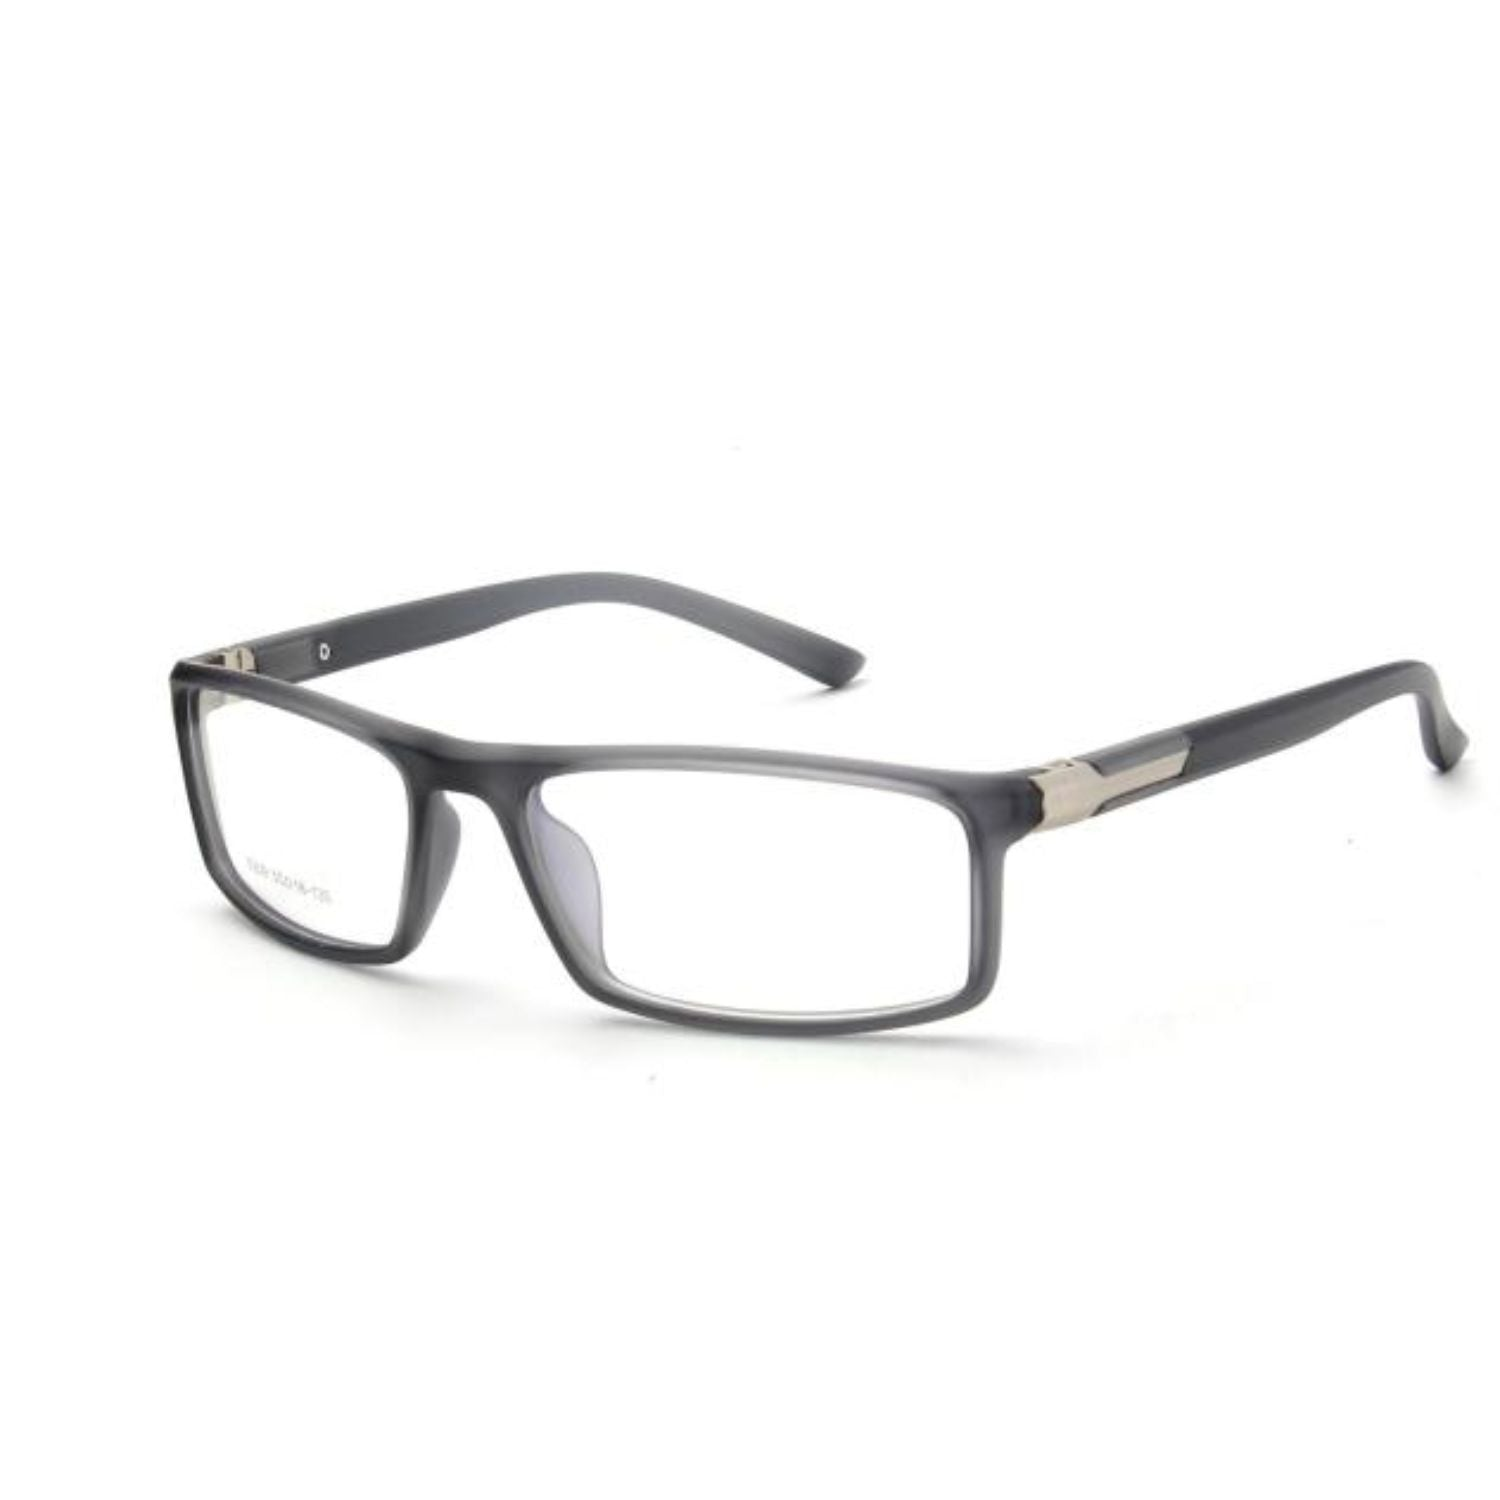 OTR6 - Classic Rectangle Optical Eyeglasses